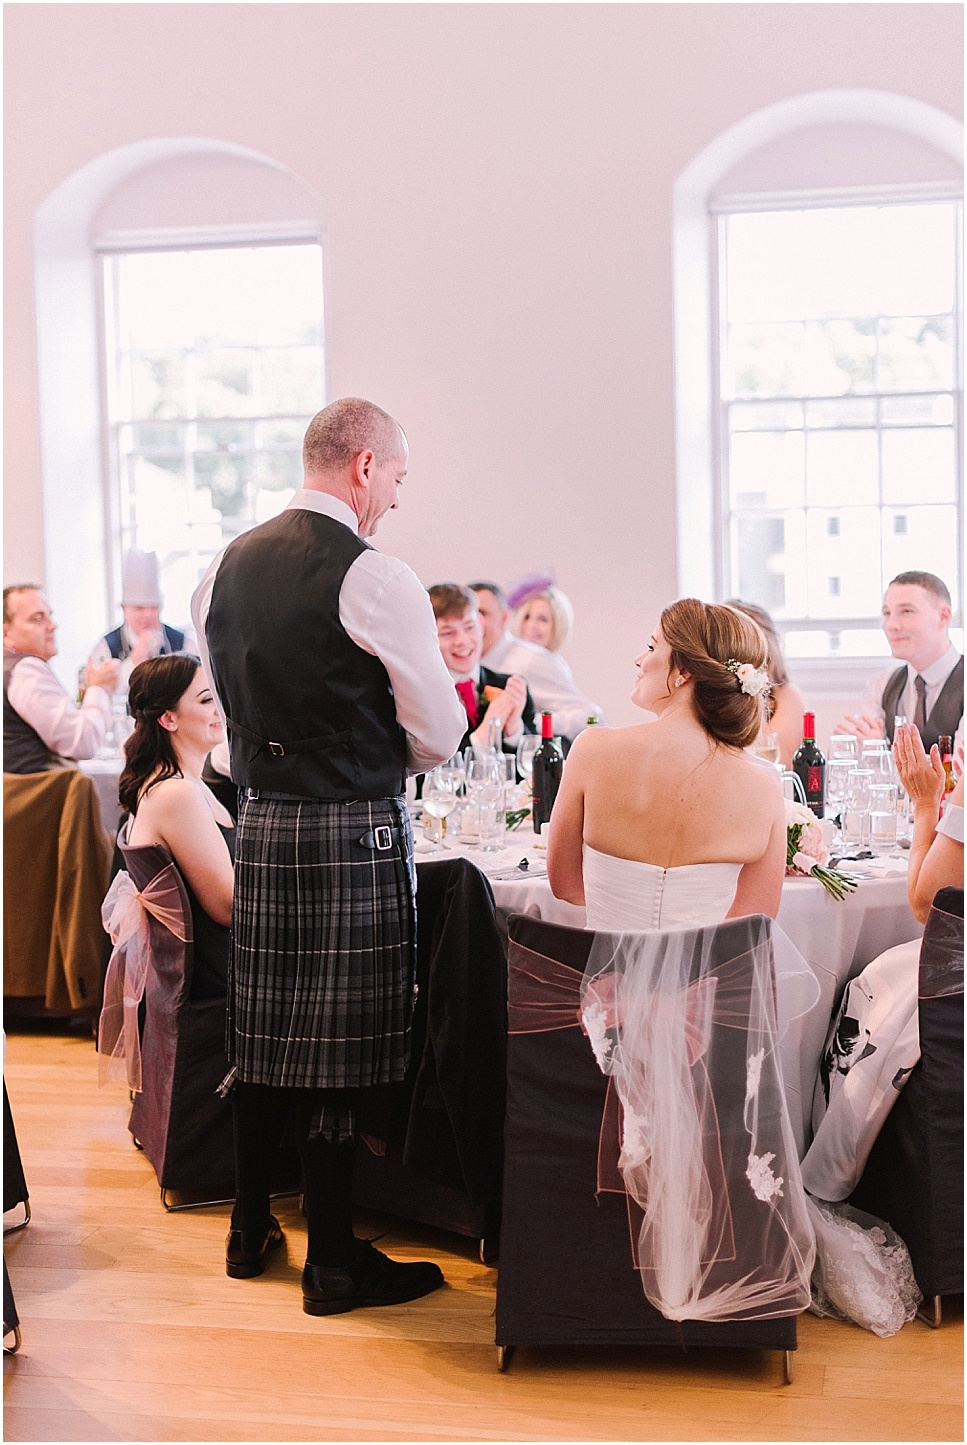 mareikemurray_wedding_photography_linlithgow_burgh_halls_068.jpg